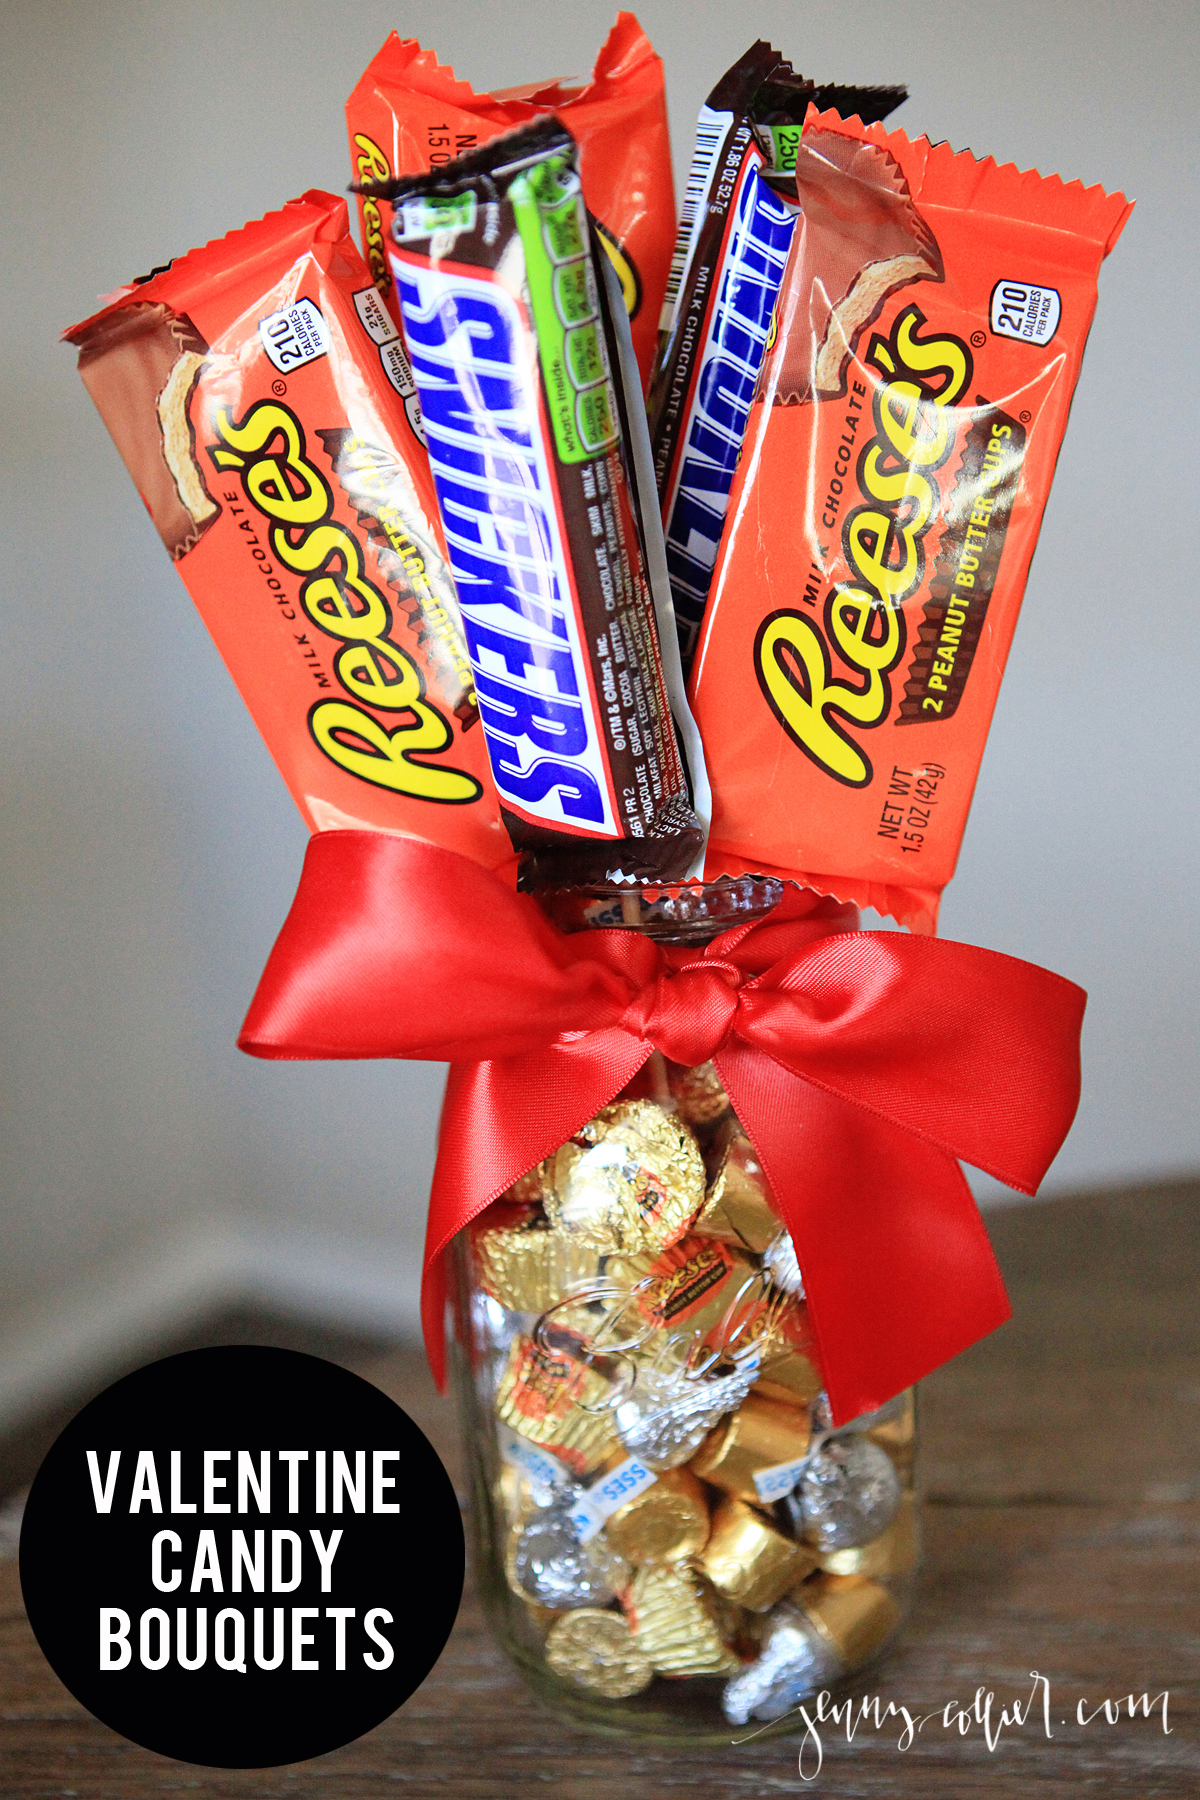 Valentine Candy Bouquet | Fun Family Crafts |Valentines Cotton Candy Bouquet Ideas